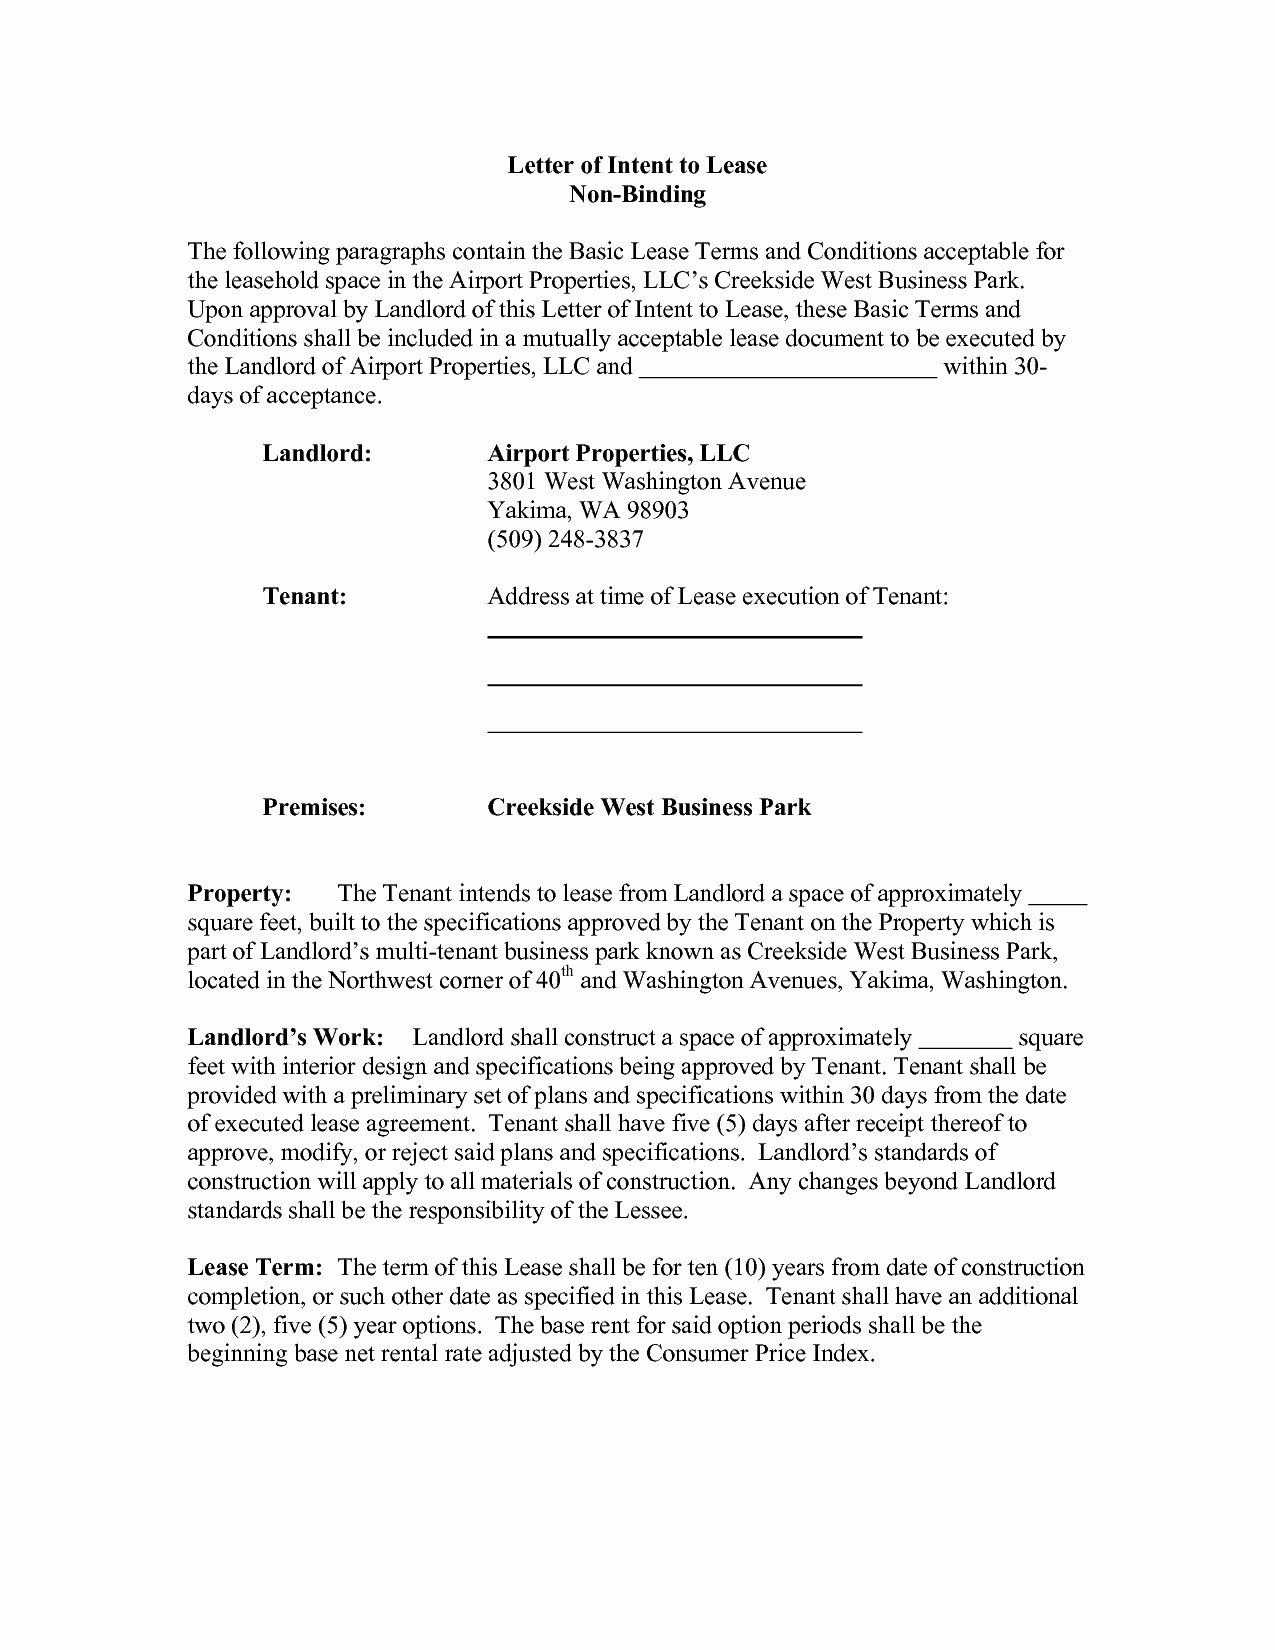 Letter Of Intent to Rent Property Awesome Letter Intent to Lease Mercial Space Template